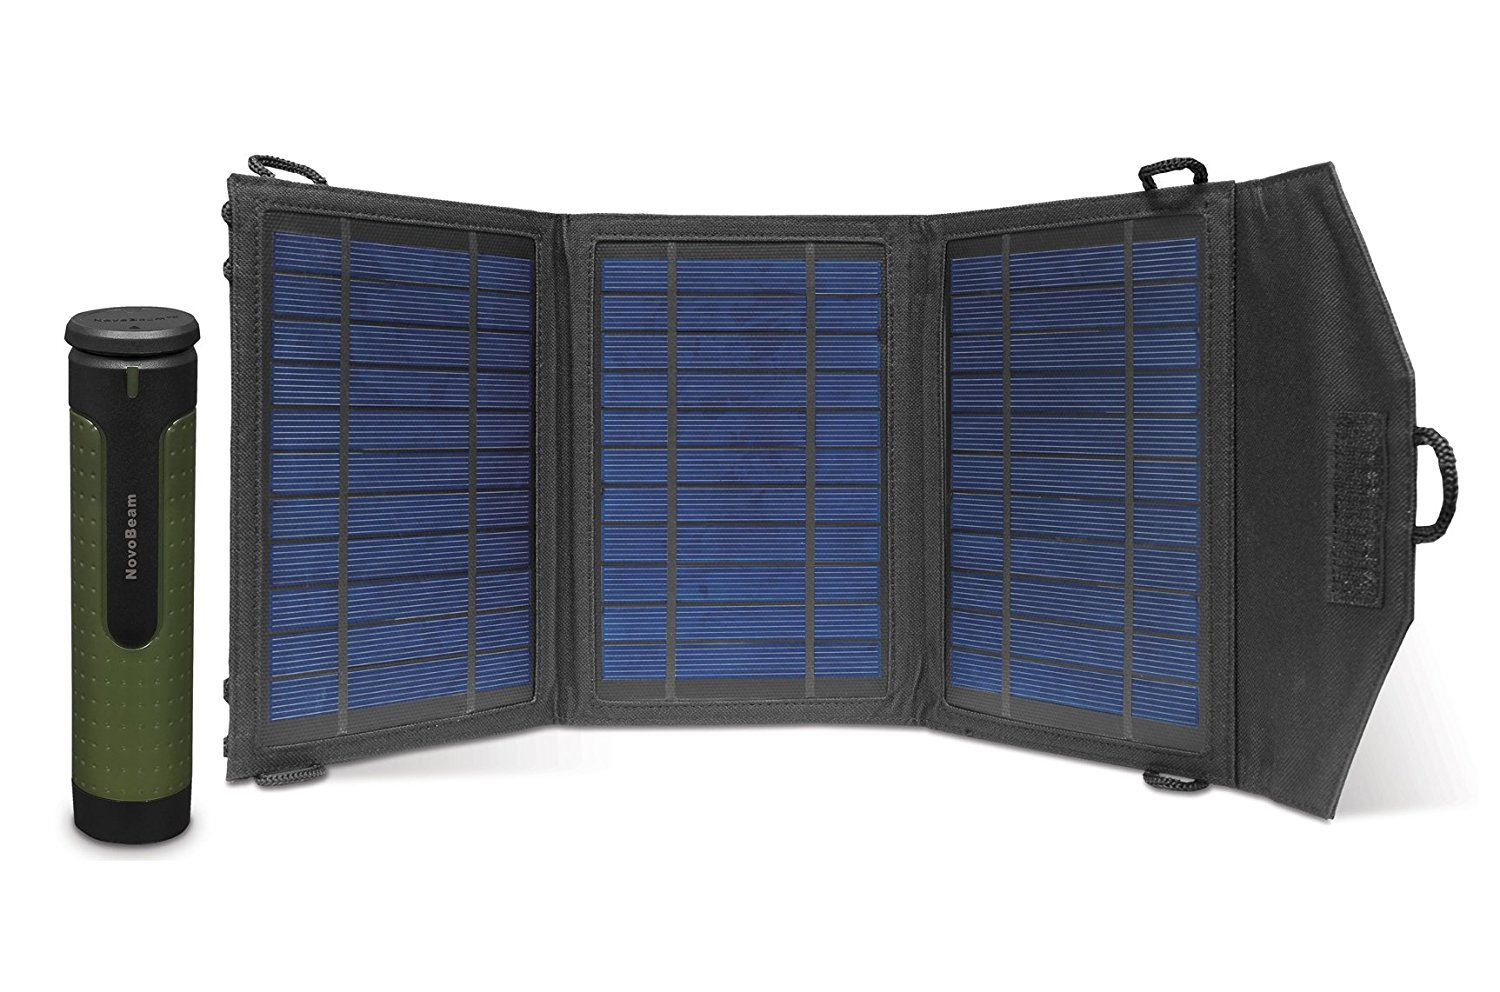 Best Solar Panels For Camping Dependable Power On The Go